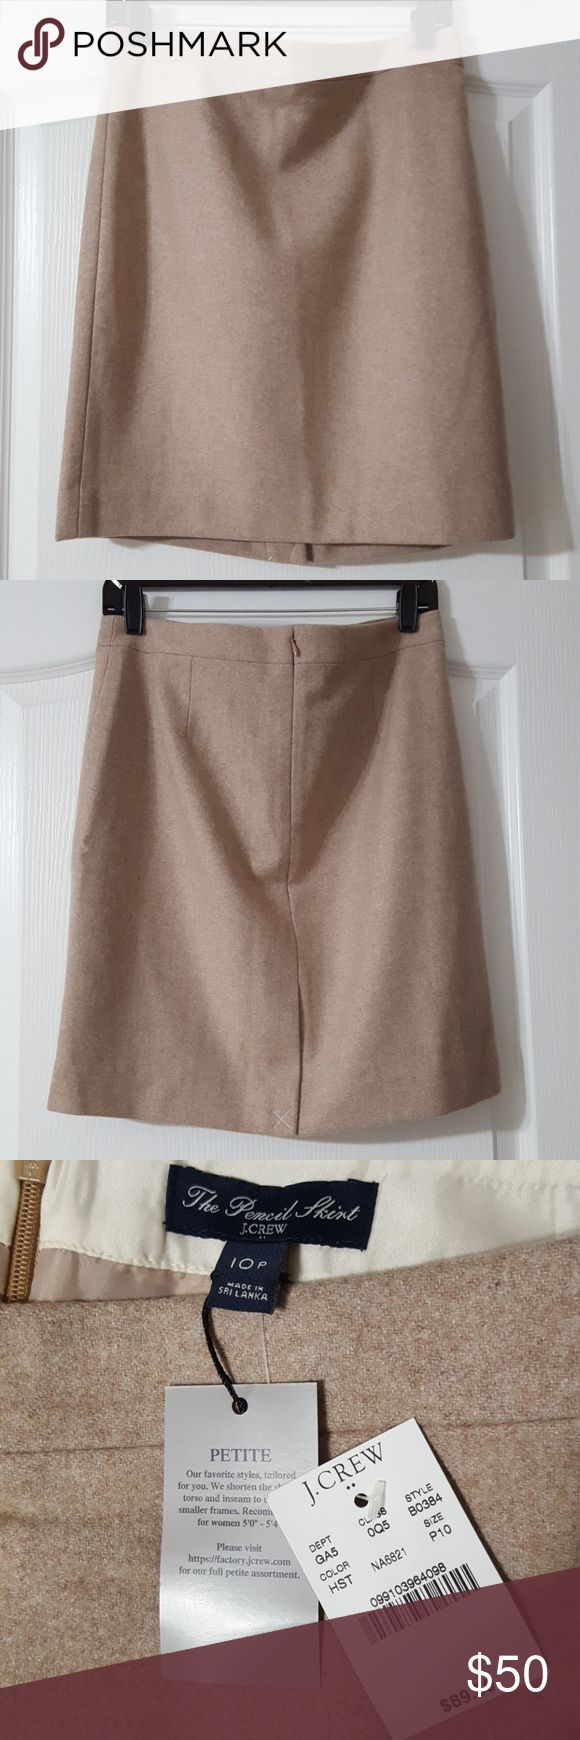 """J.Crew Petite Pencil Skirt in Double-Serge Wool Wool/Viscose  Sits at waist  Approx. 19.5"""" long  Back zip closure  Back vent Lined  Brand New with tag! J. Crew Skirts Pencil"""